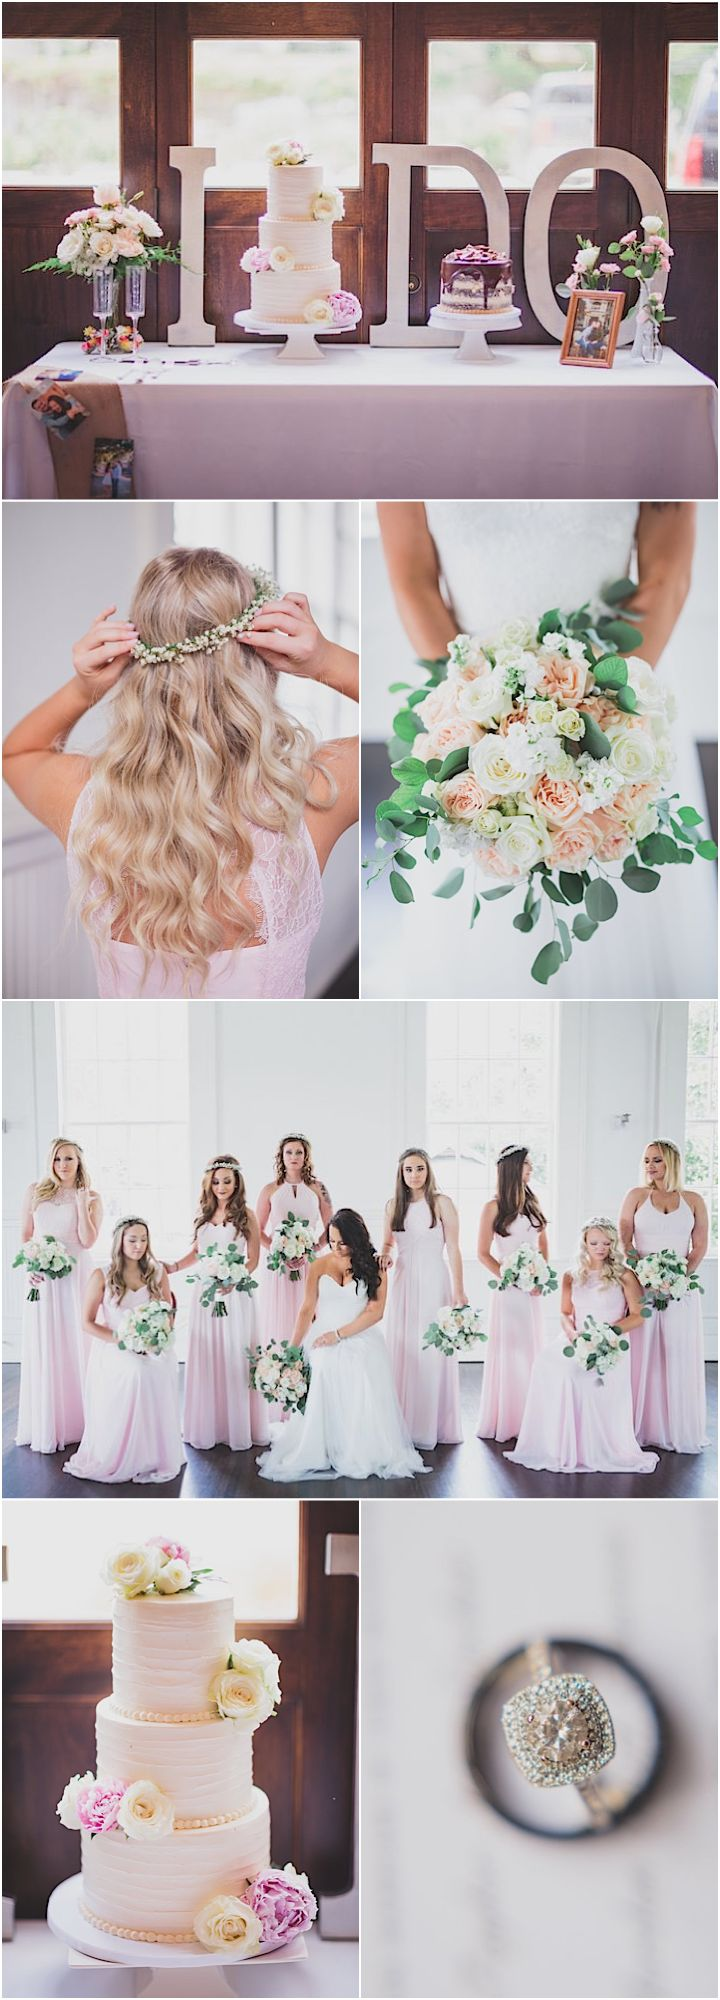 Featured Photographer: Kelly Costello Photography; chic pink wedding details